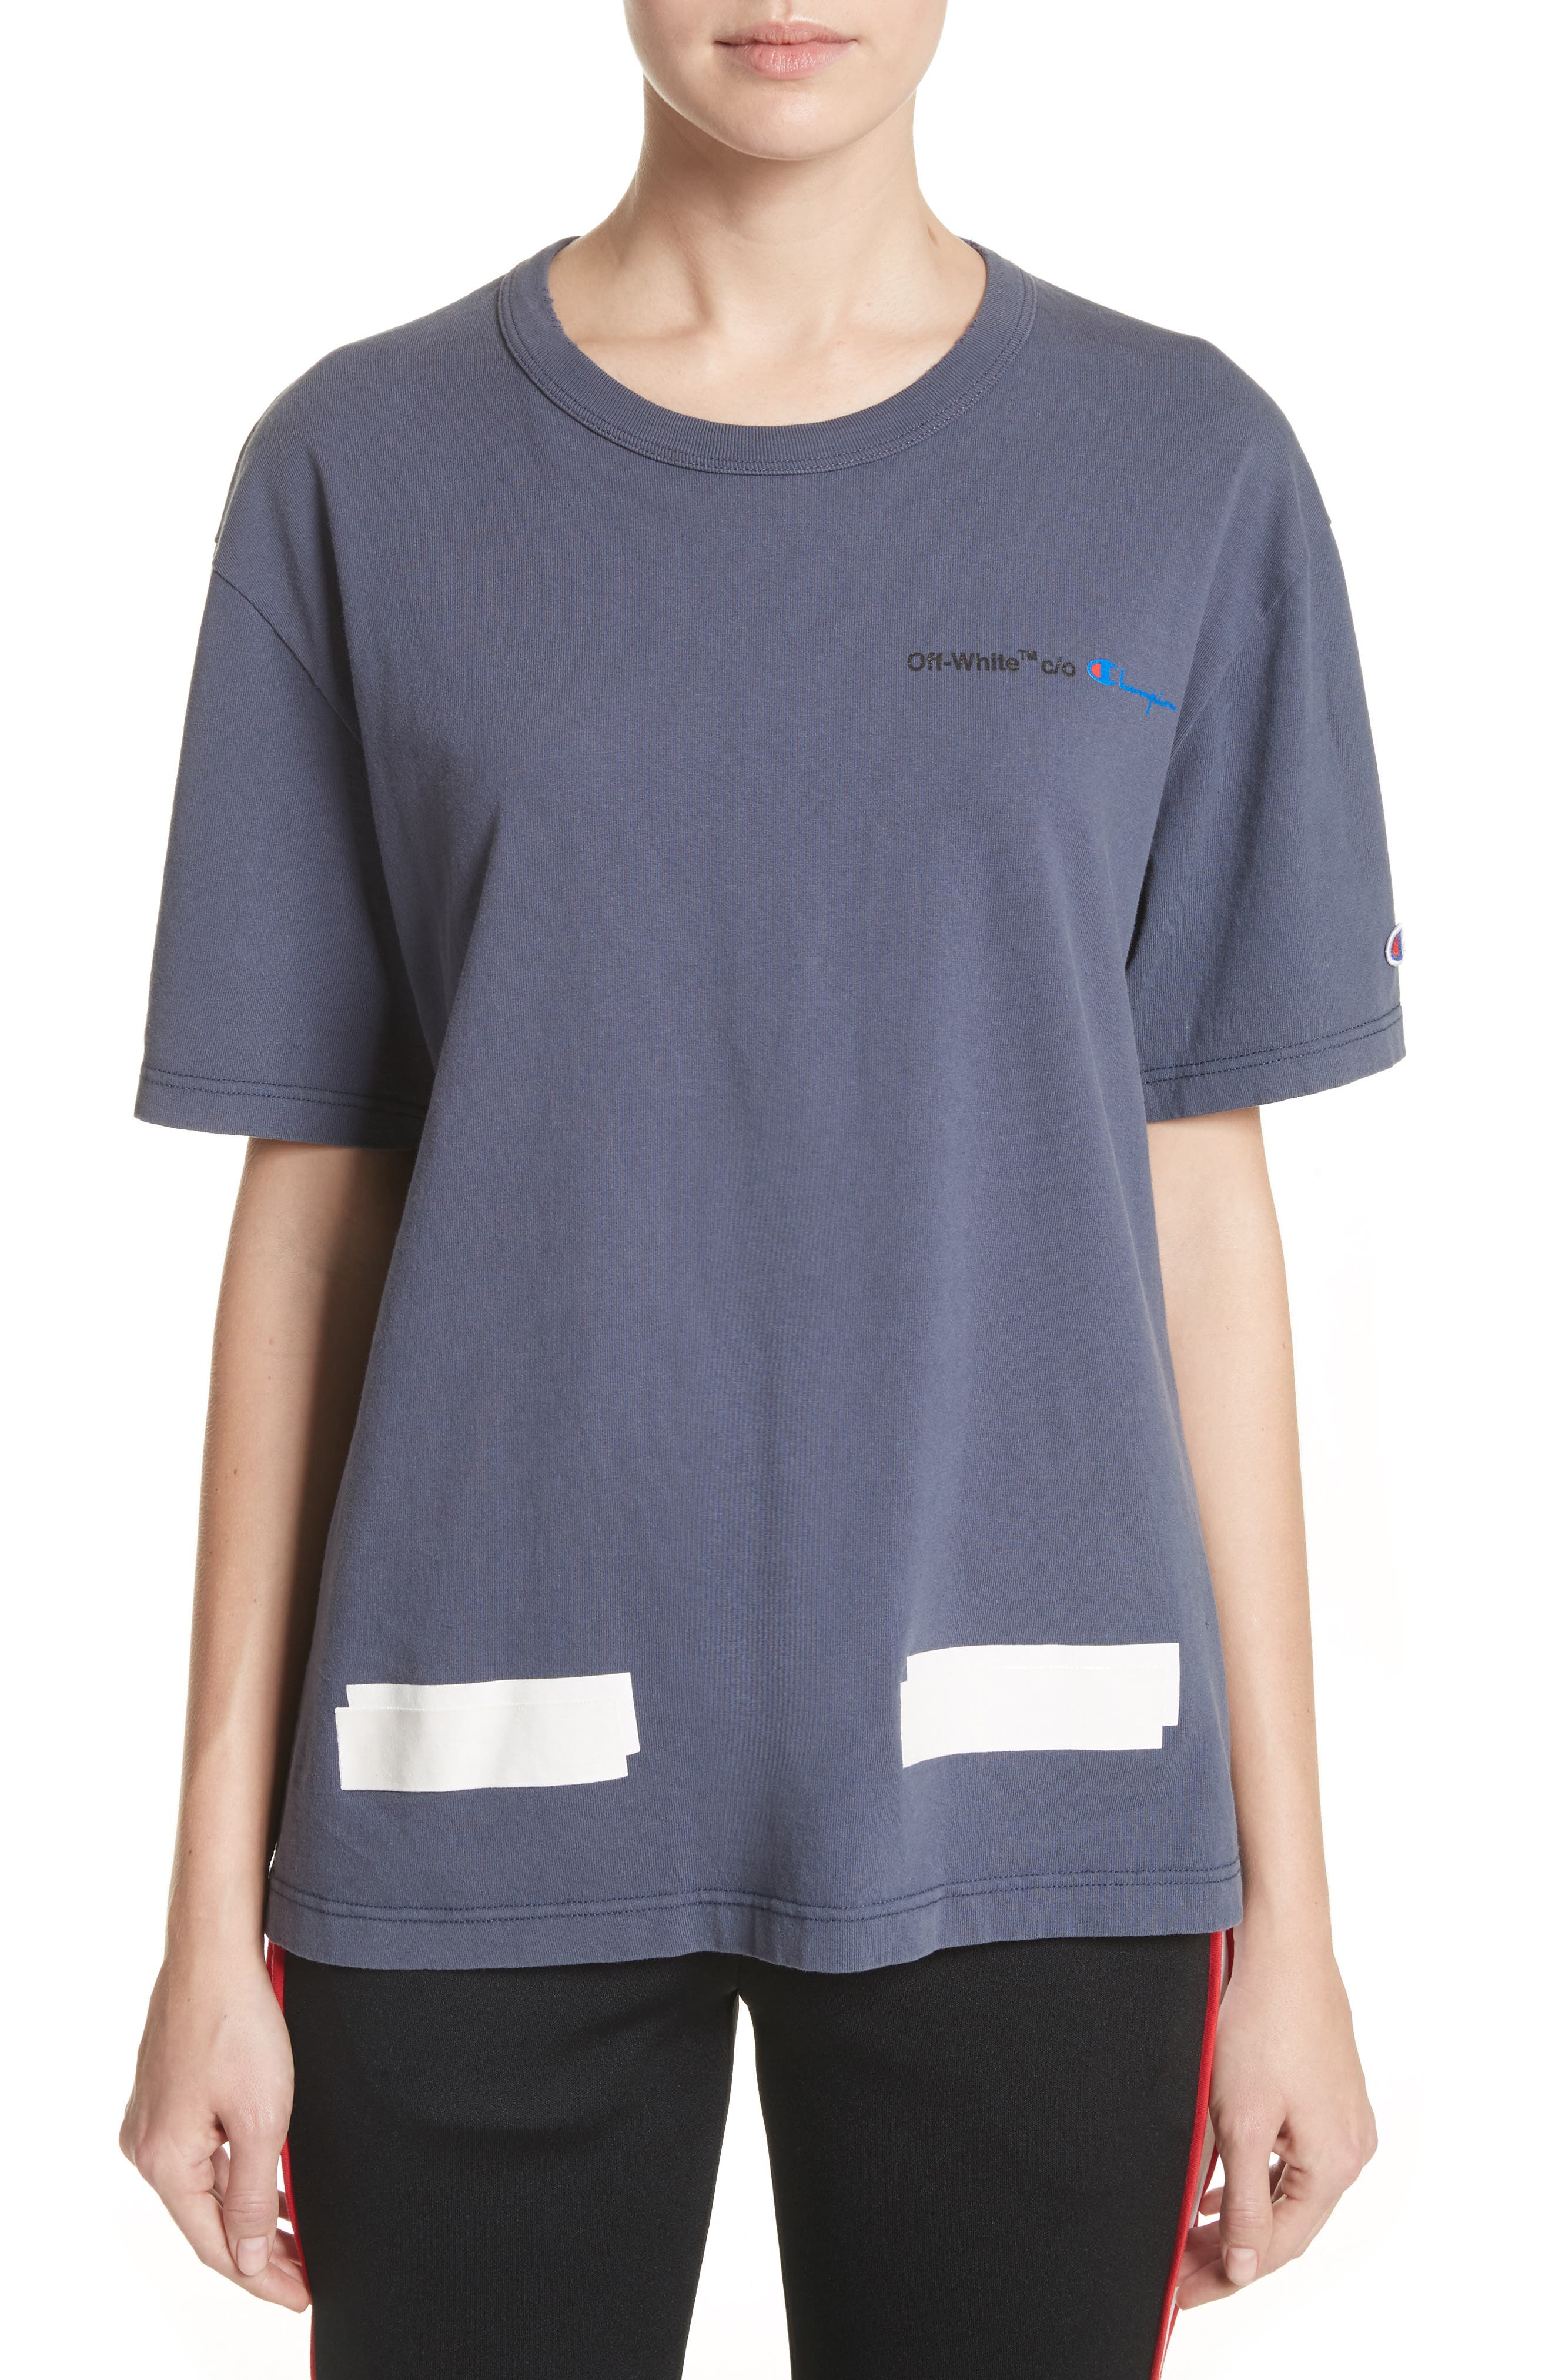 x Champion Tee,                         Main,                         color, Dusty Blue/ White